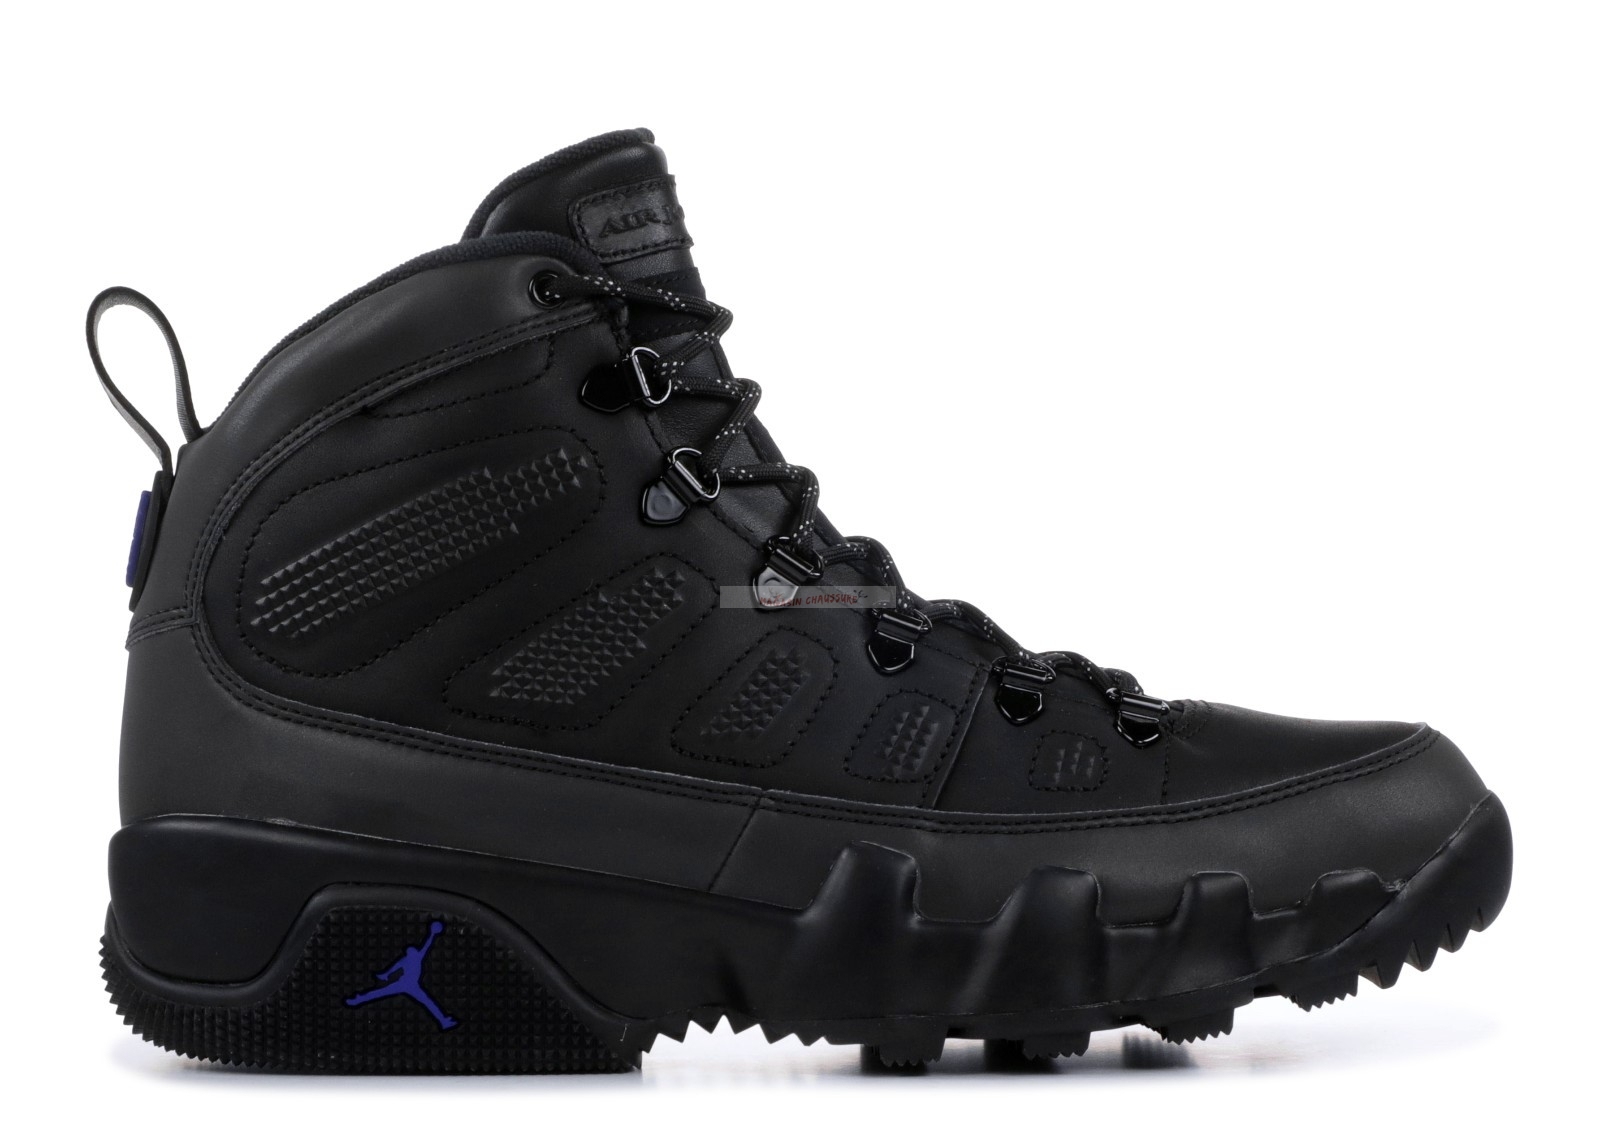 Air Jordan 9 Retro Boot Nrg Noir (ar4491-001) Chaussure de Basket